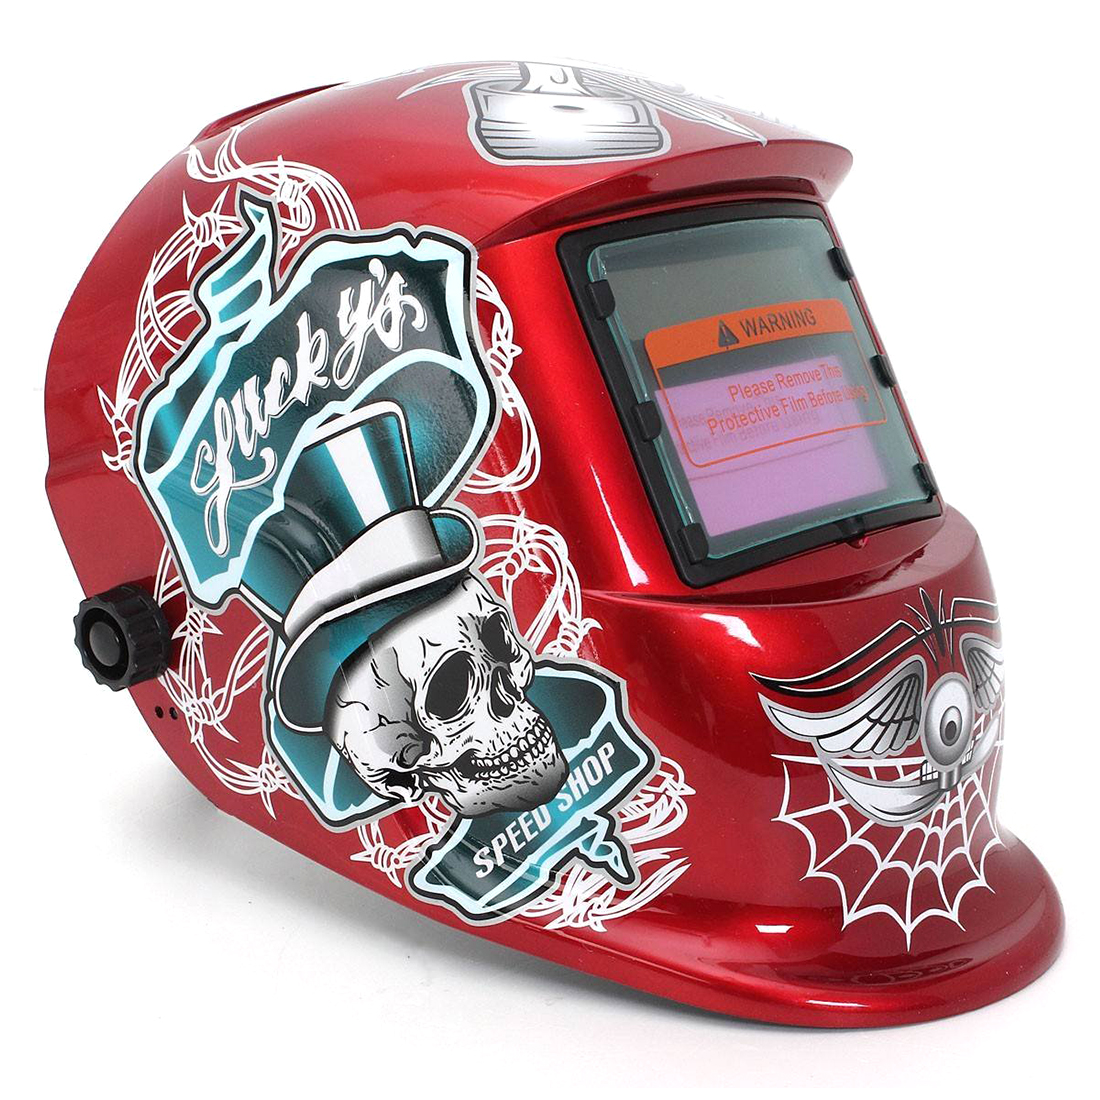 Welding Mask Helmet Solar Automatic Welding (Use Solar Energy For Refill) Red Skull And Spider Web Protective Accessory